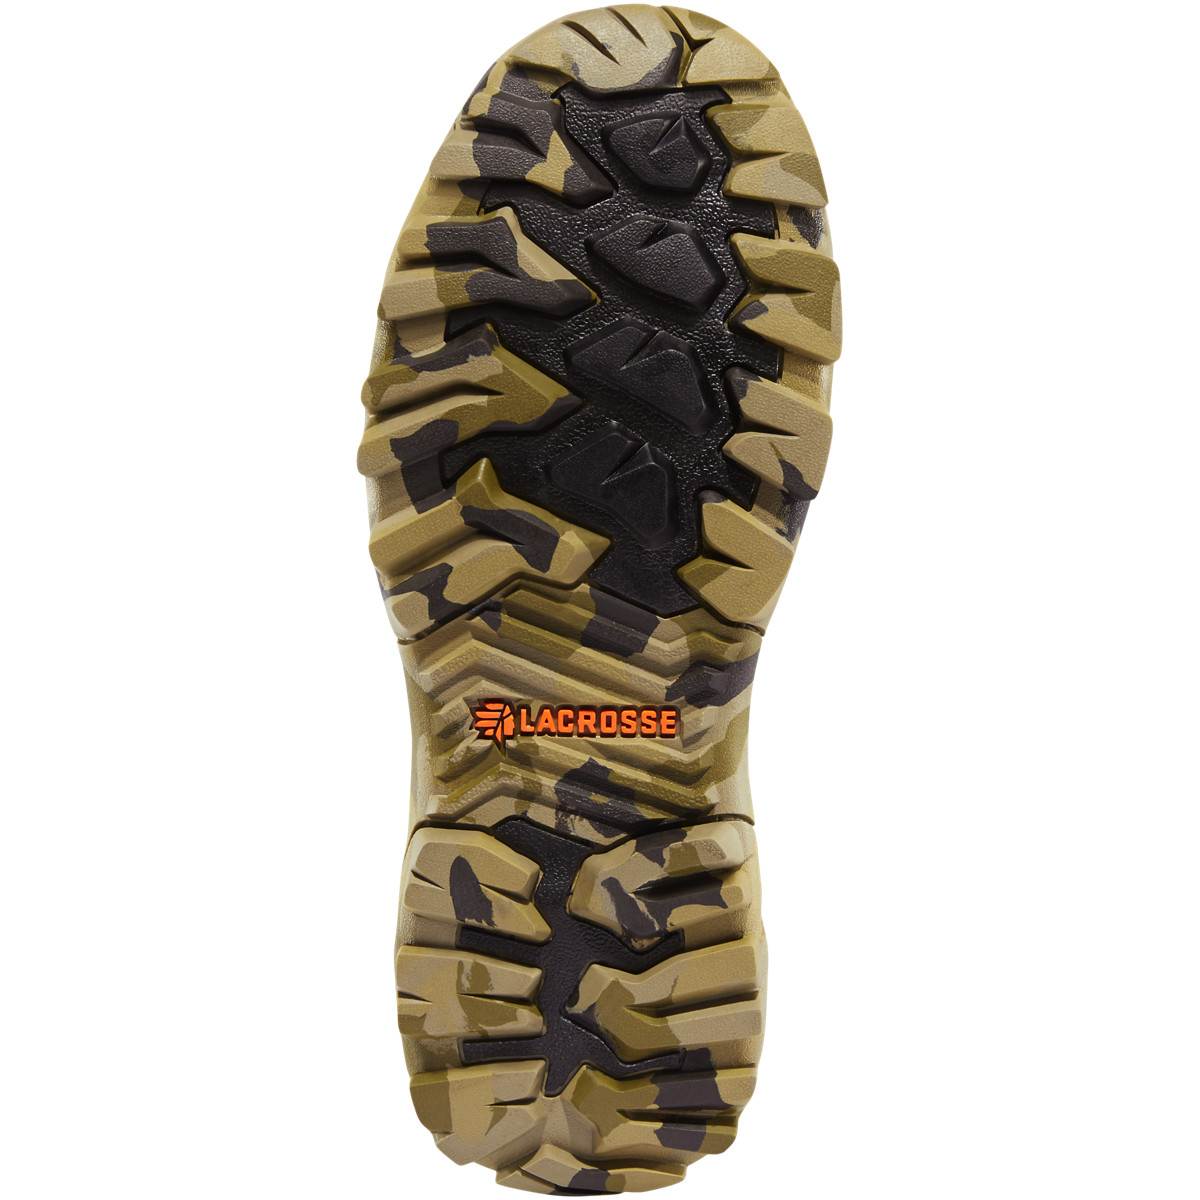 Women's Alphaburly Pro 15